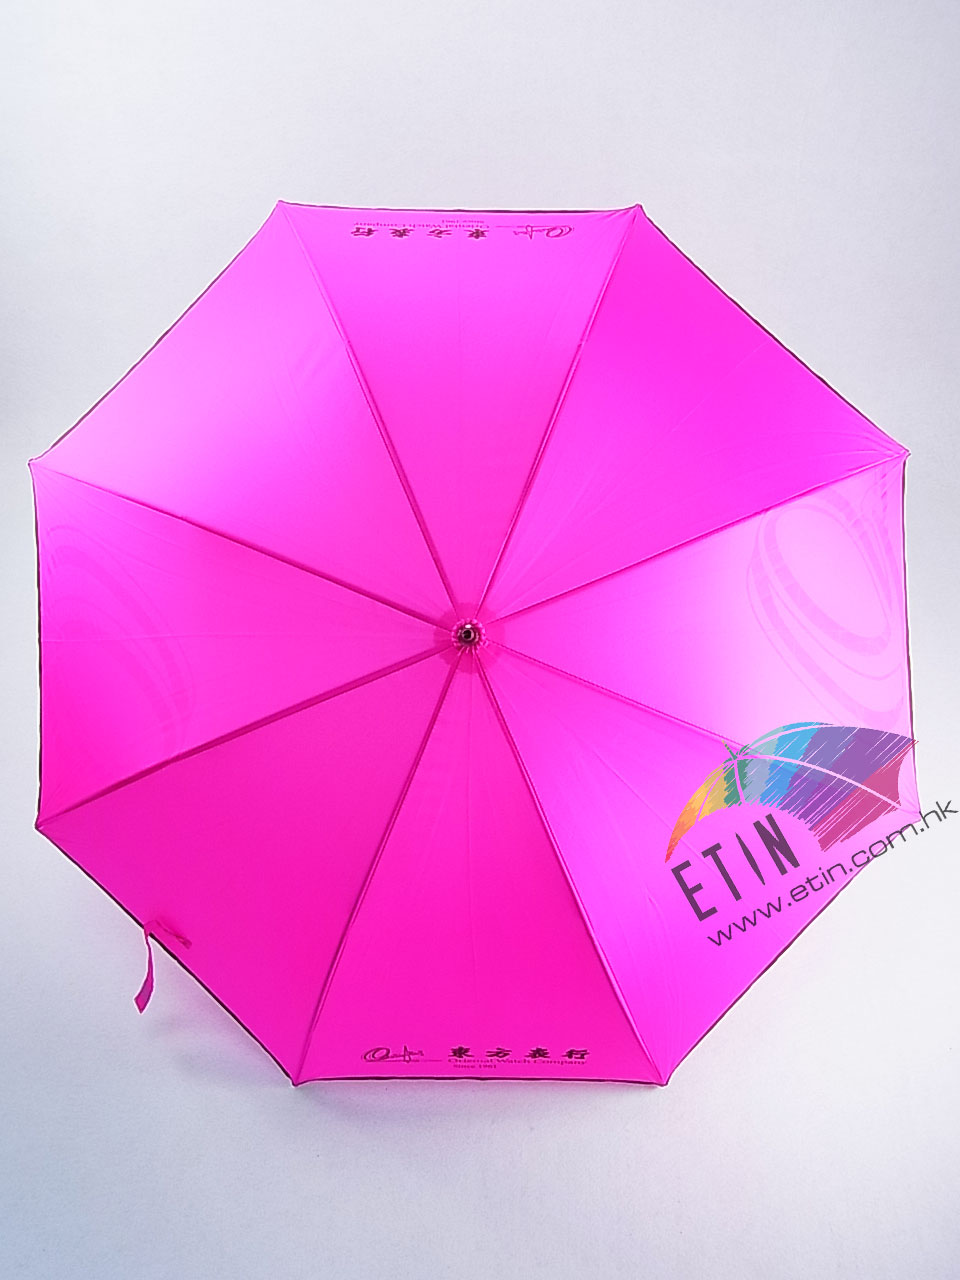 Etin Colorful promotional umbrella A043